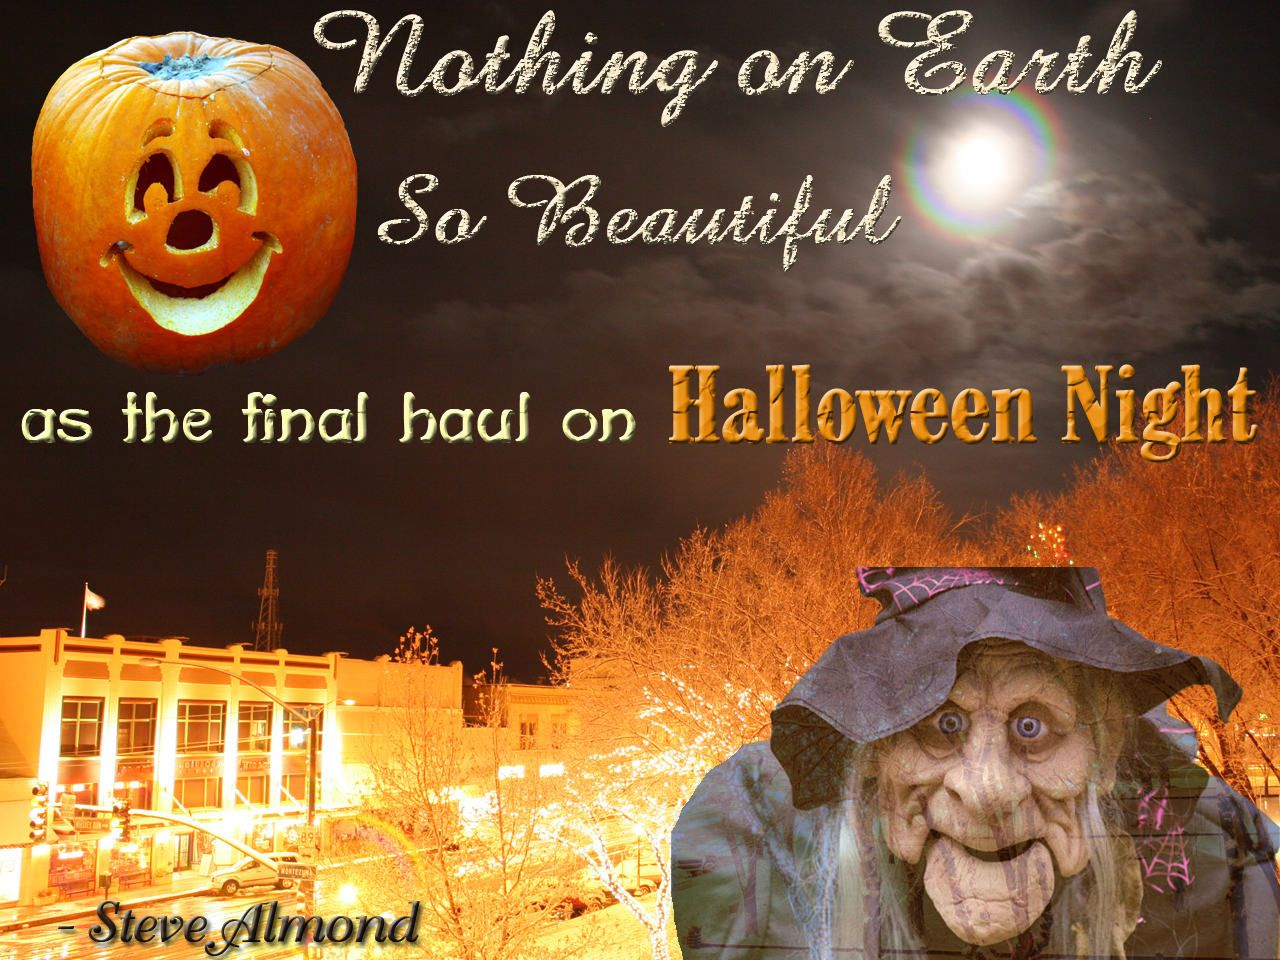 funny halloween 2014 quotes sayings - Scary Halloween Quotes And Sayings